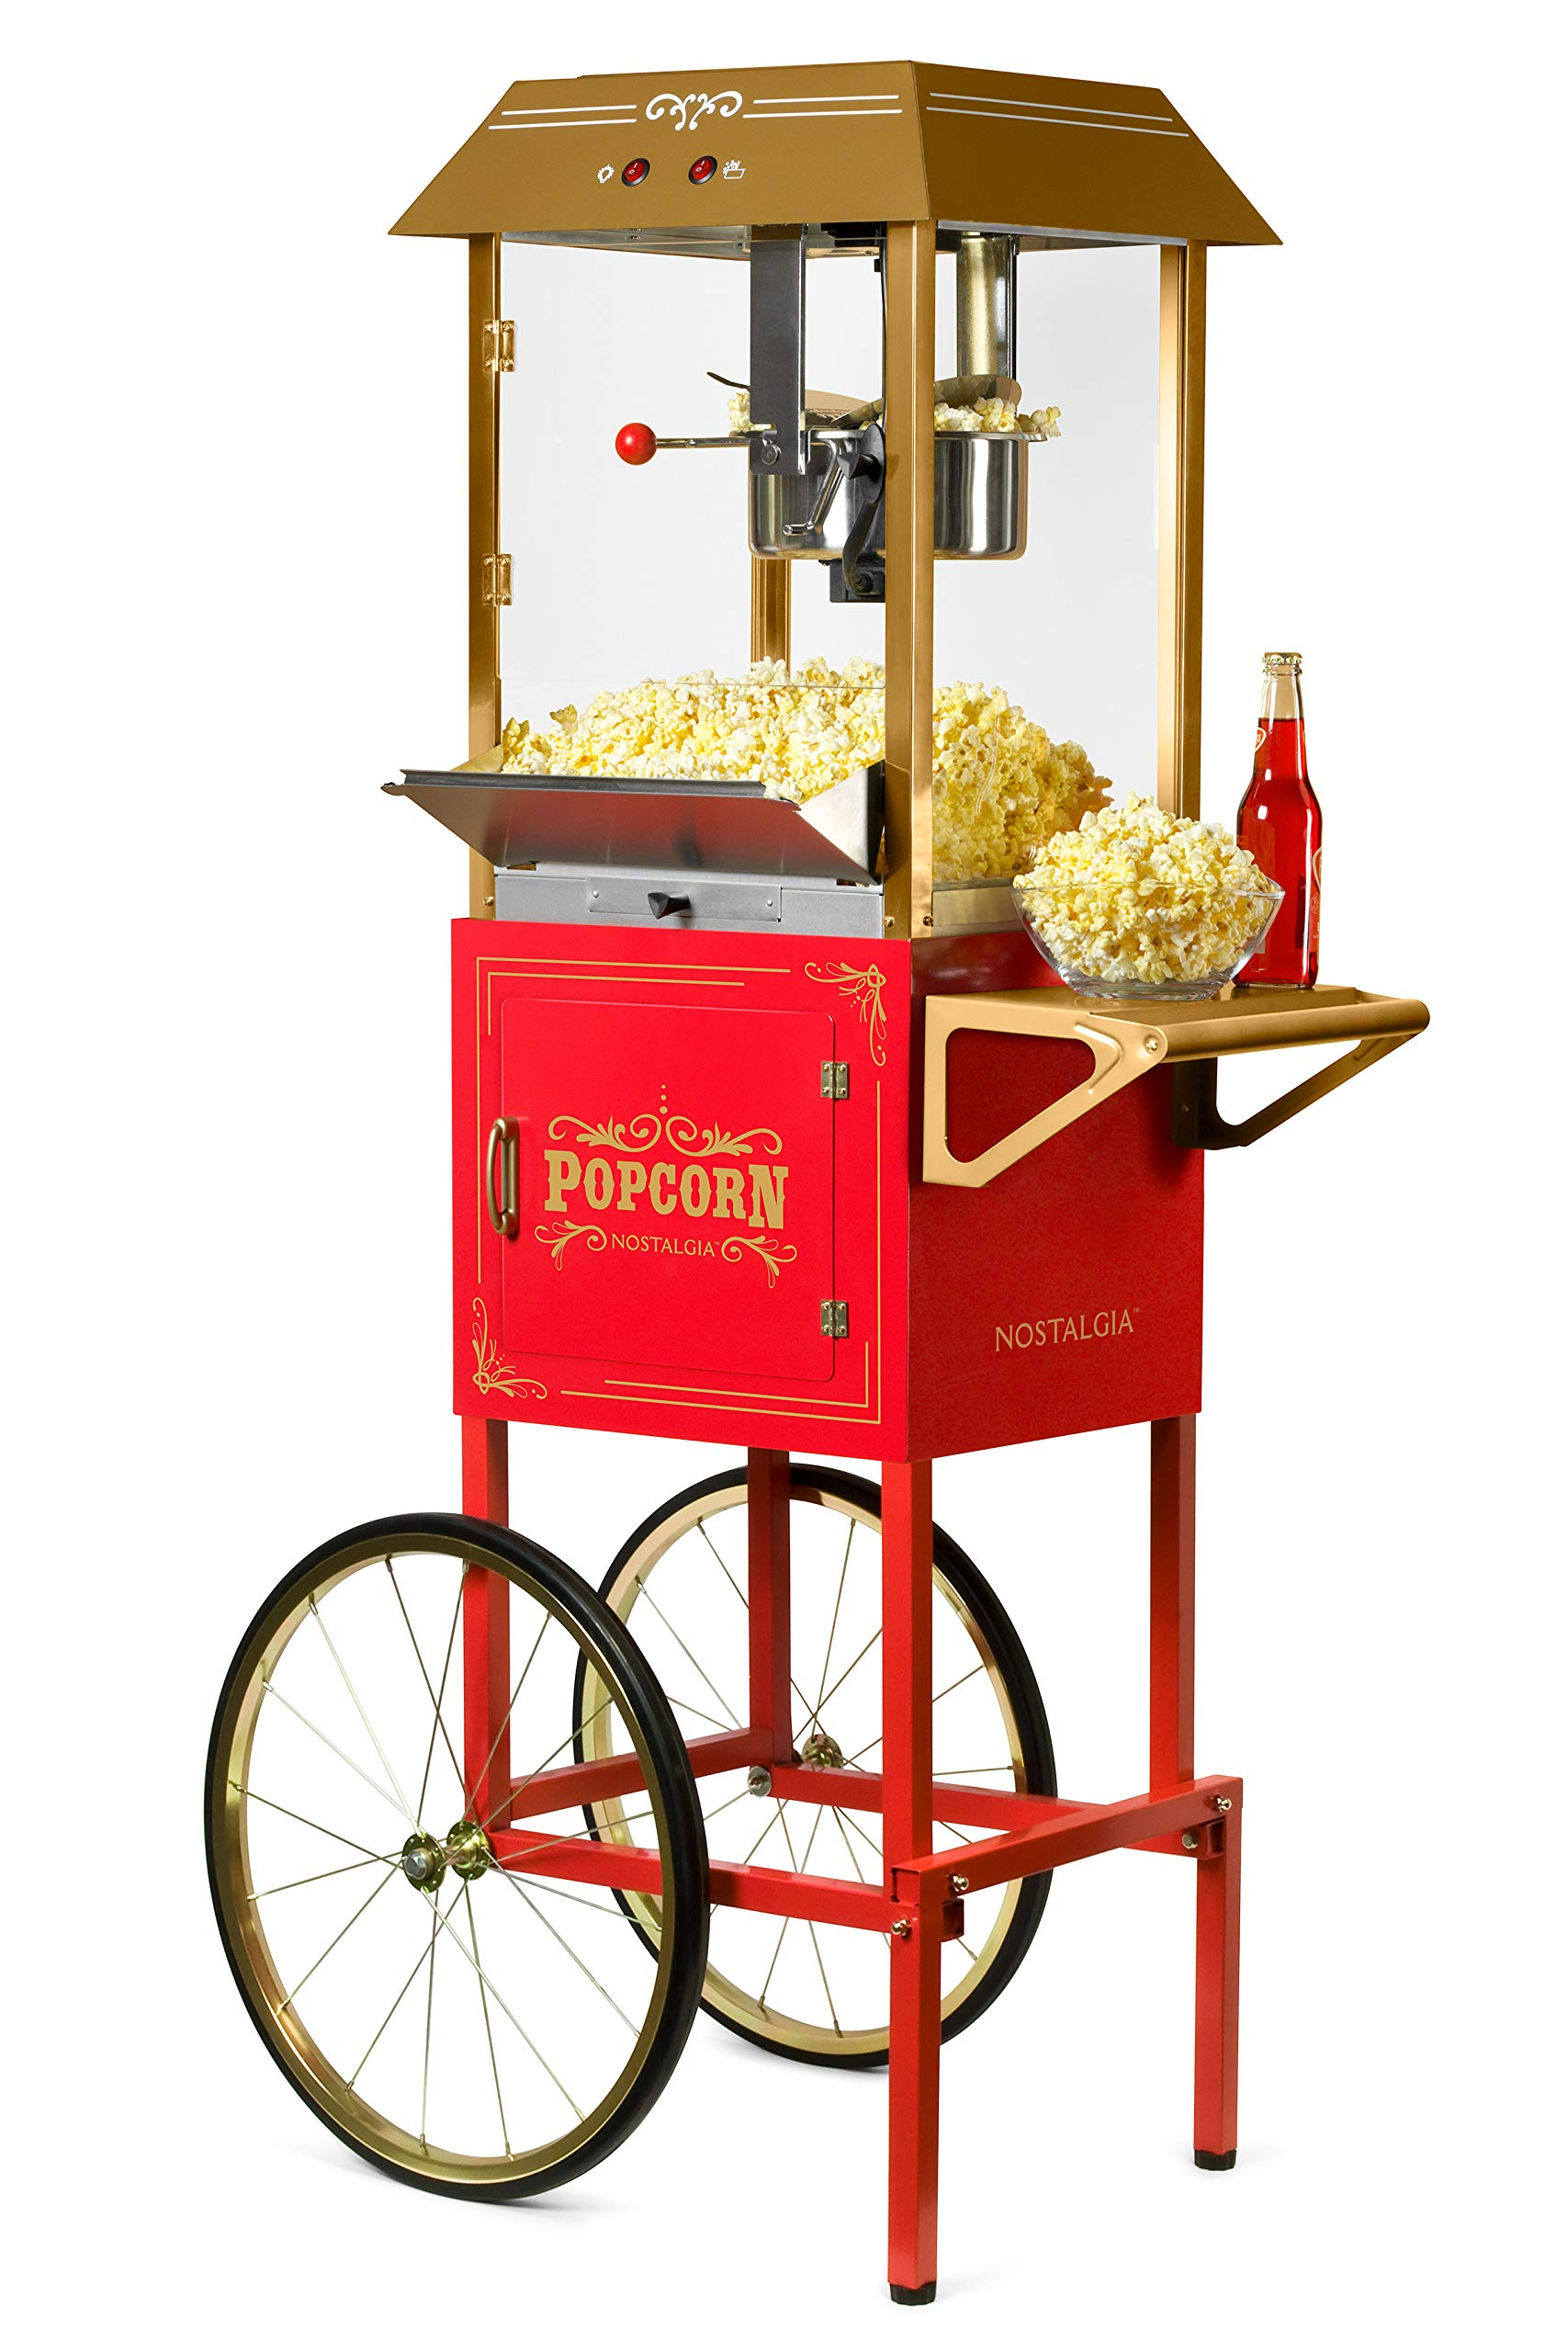 Nostalgia CCP1000RED Vintage 10-Ounce Professional Popcorn and Concession Cart, 59 Inches Tall, Makes 40 Cups, With Kernel Measuring Cup, Oil Measuring Spoon and Scoop, 19-Inch Wheels by NOSTALGIA